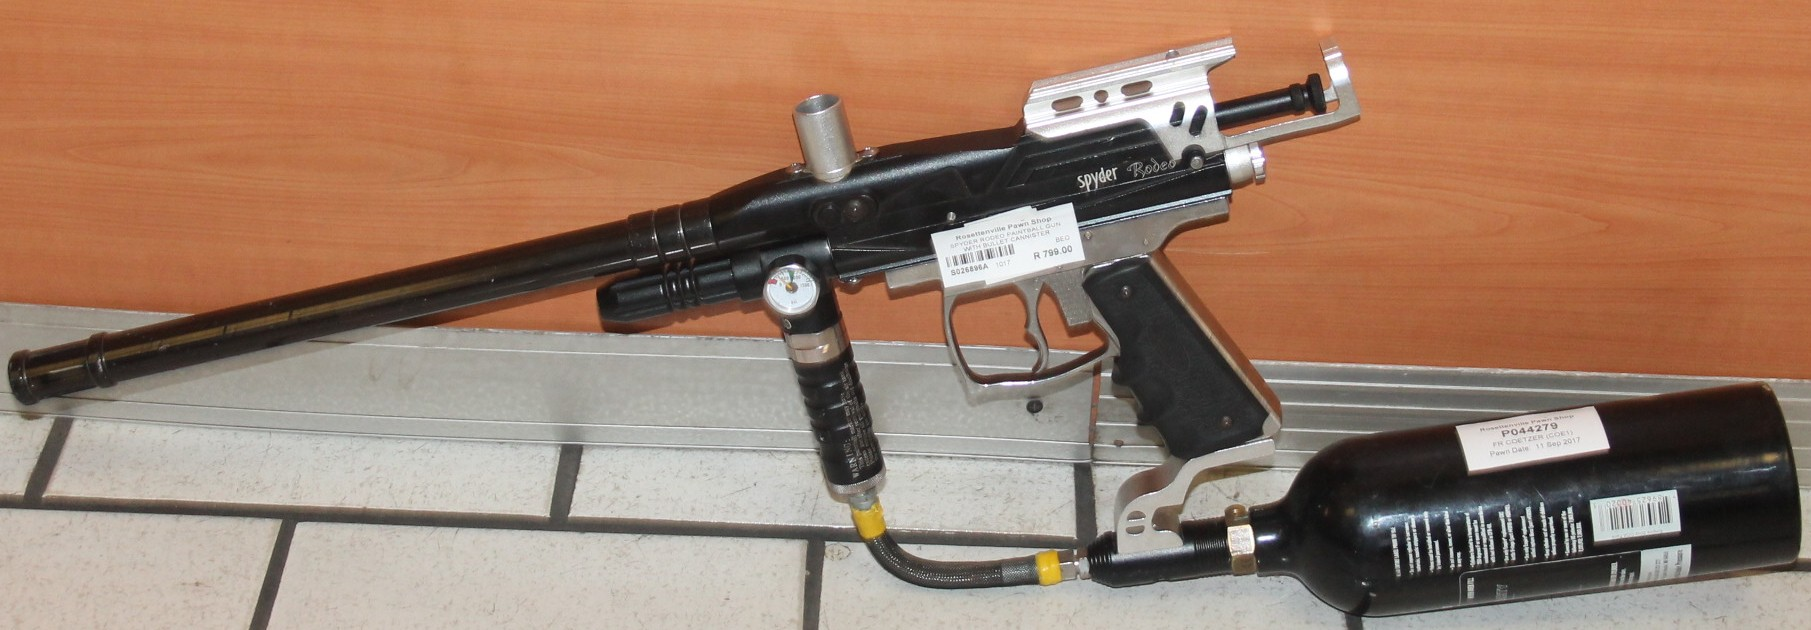 Paintball gun  #Rosettenvillepawnshop